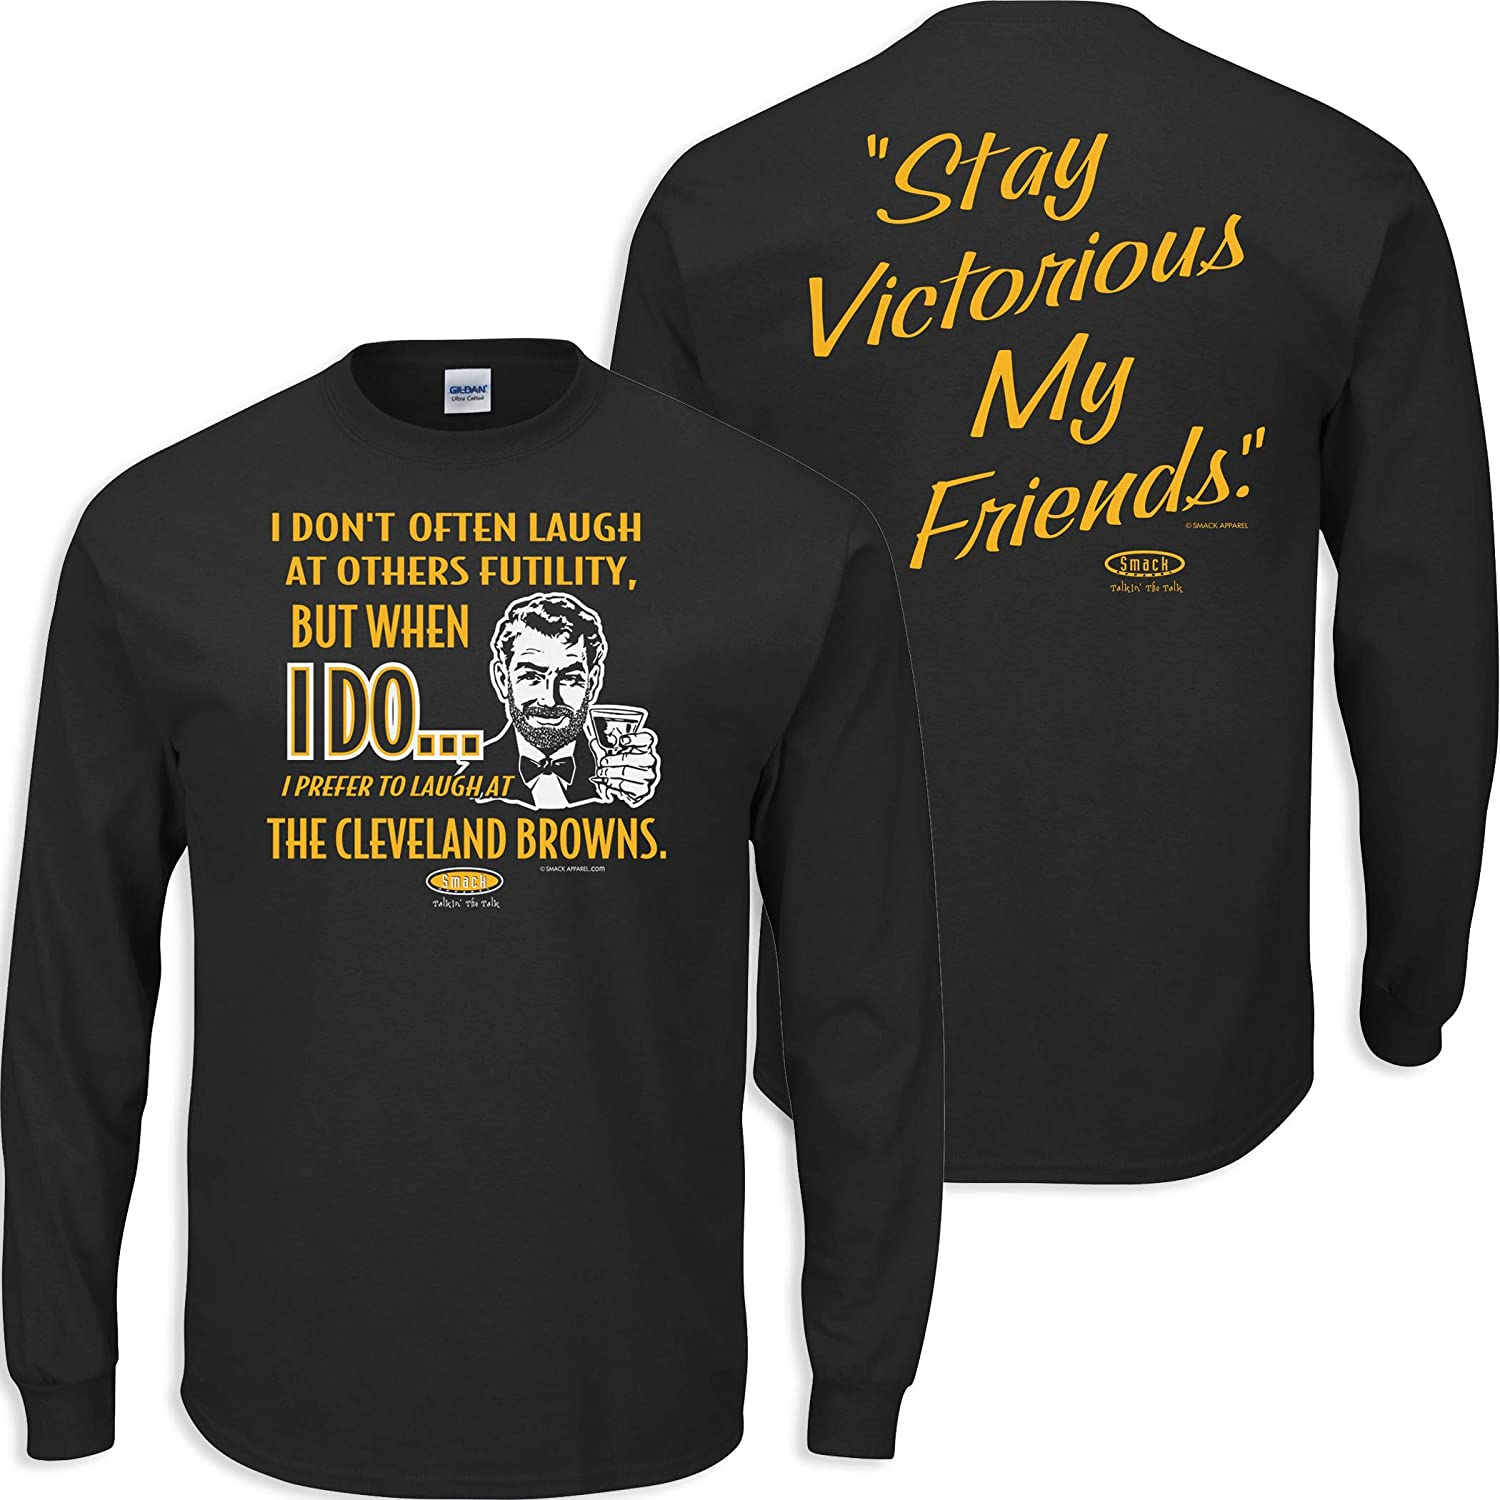 Anti-Browns Pittsburgh Football Fans Sm-5X Black T-Shirt Stay Victorious